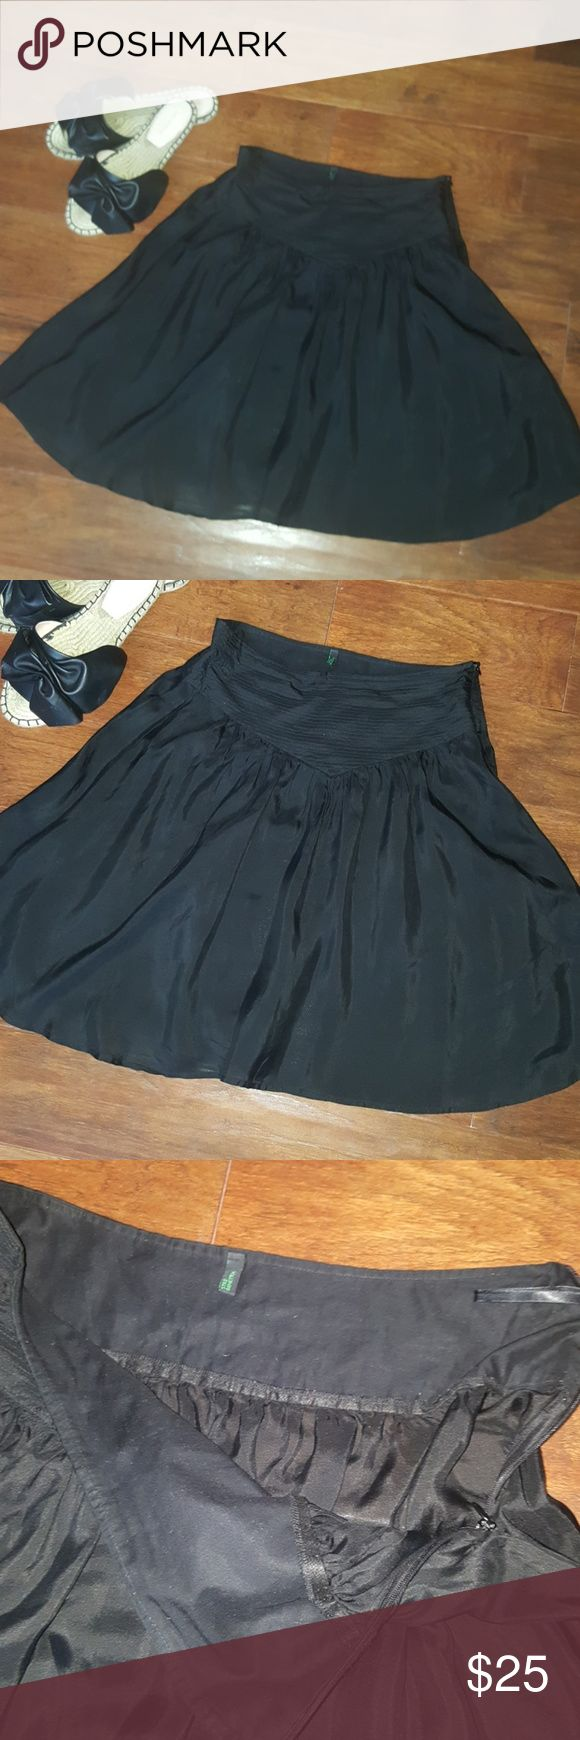 Benetton silk skirt Has a side zipper, silk, worn once maybe. Not lined.  By United Colors of Benetton United Colors Of Benetton Skirts